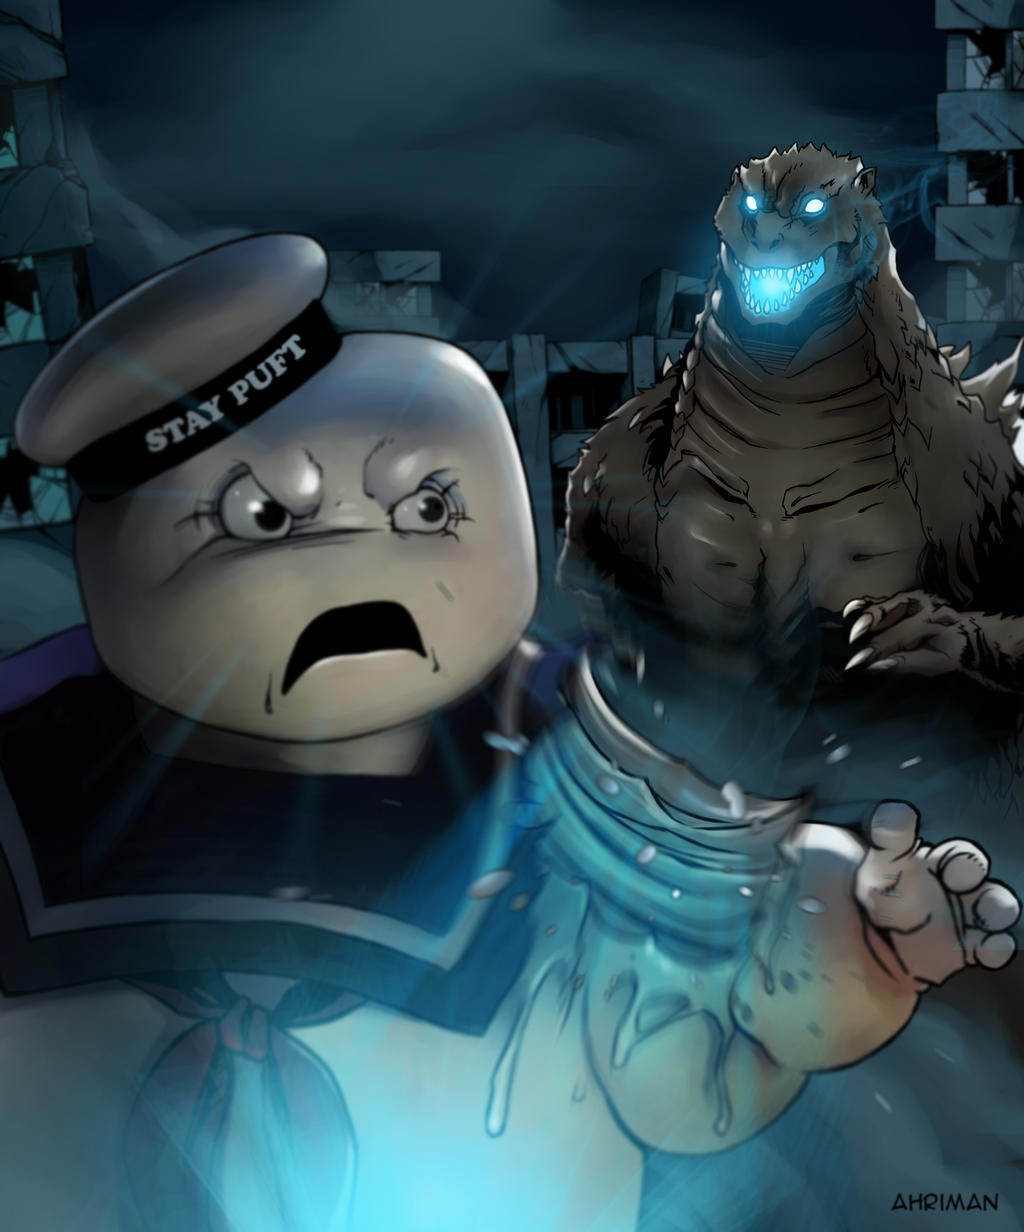 Godzilla vs Stay Puft by Ahrrr